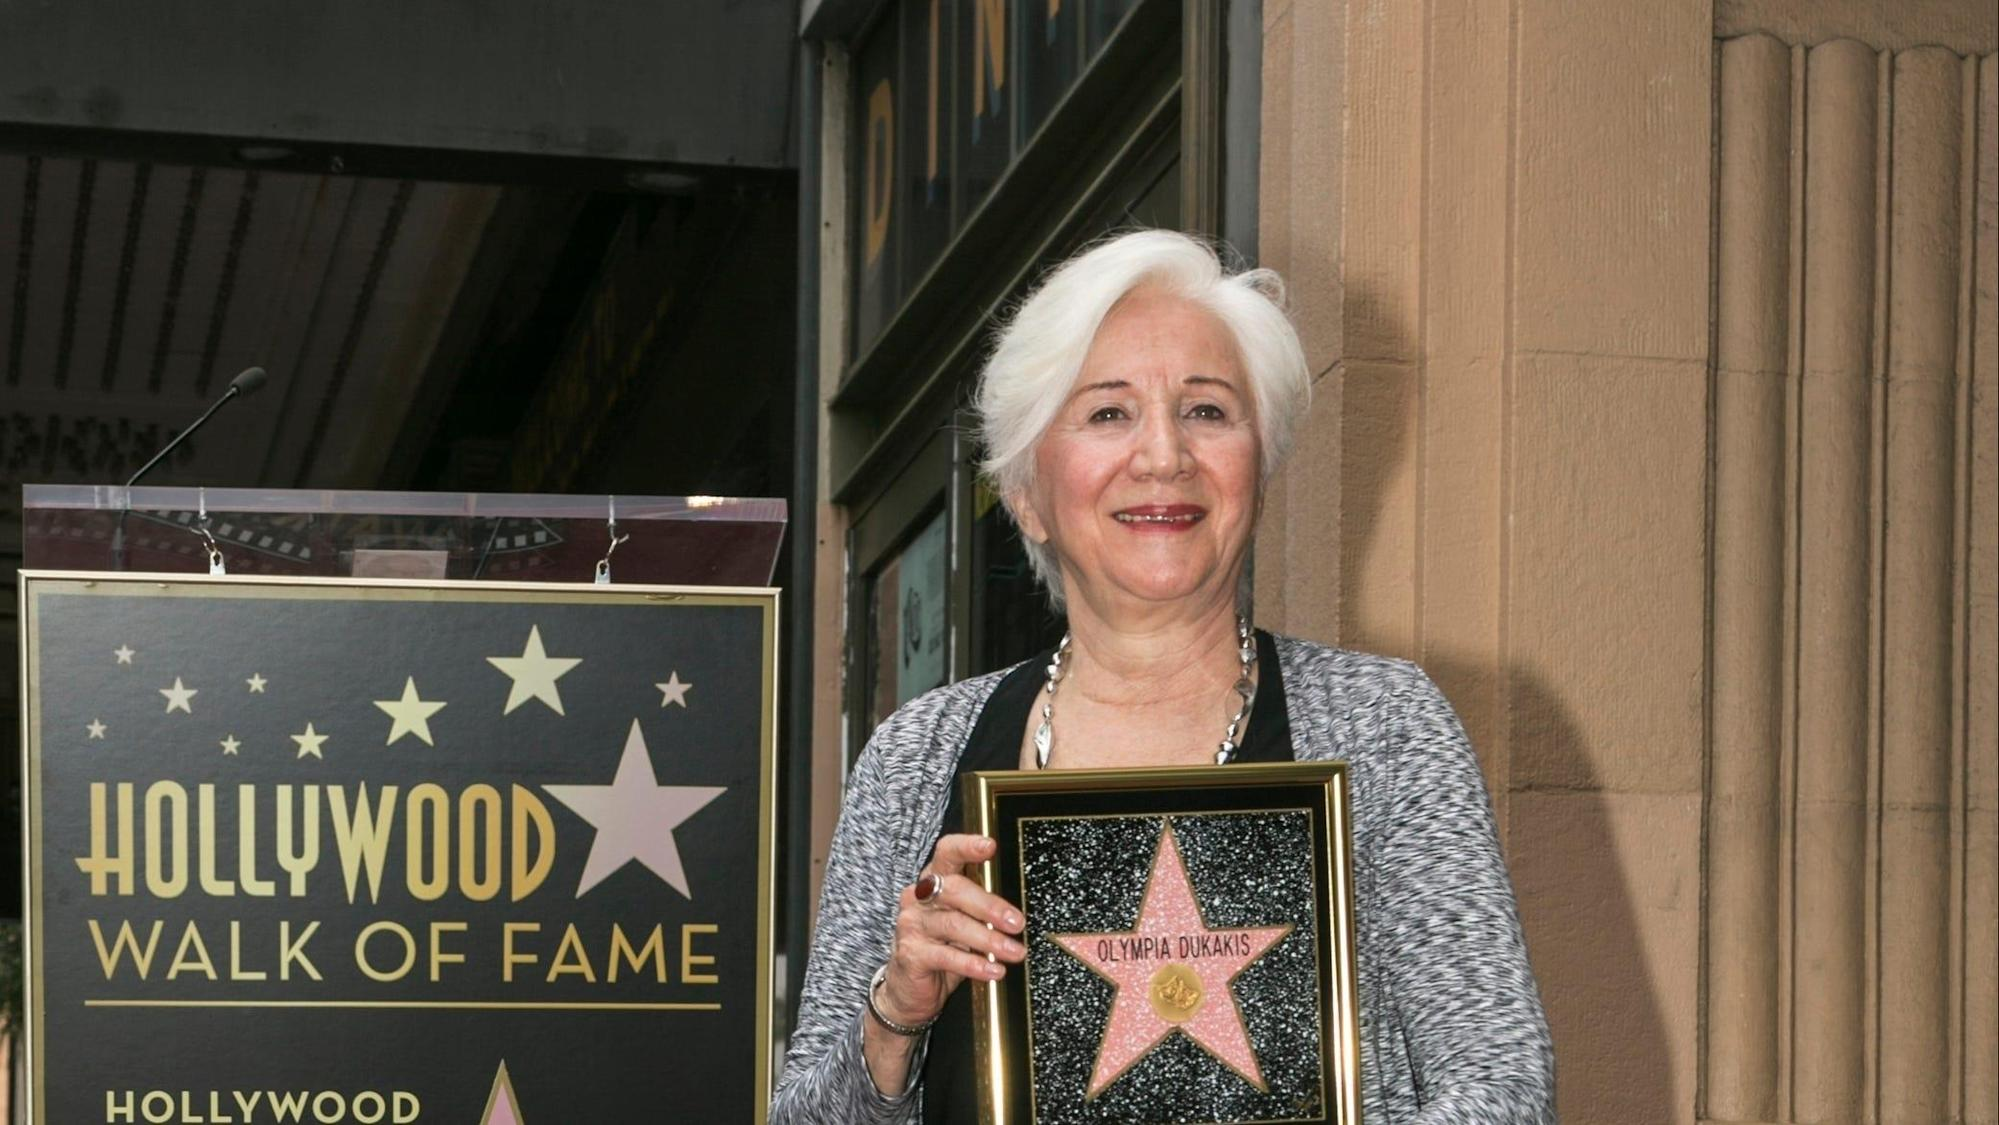 Tributes paid to 'genius' Oscar-winning actress Olympia Dukakis